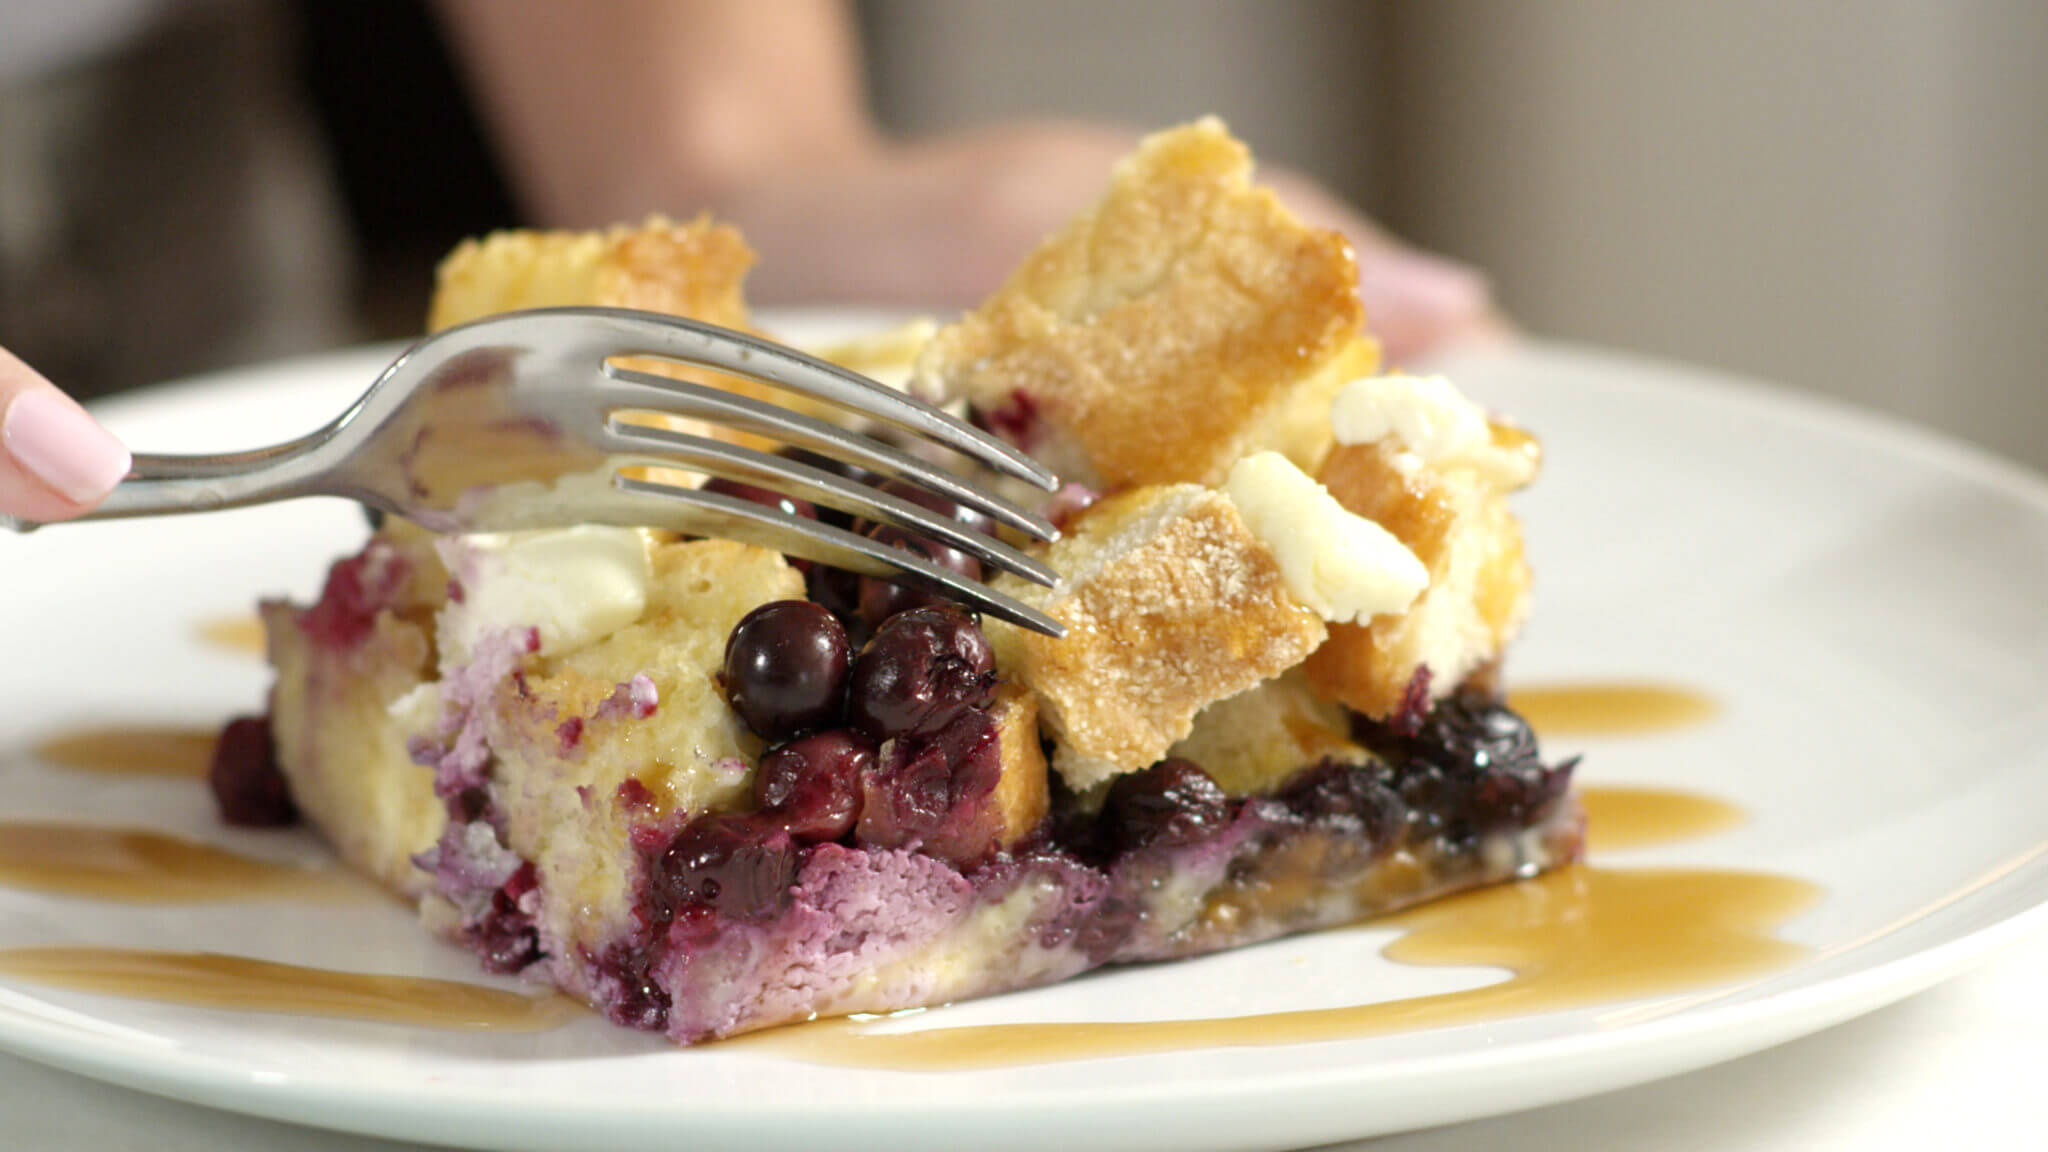 Blueberry Breakfast Casserole